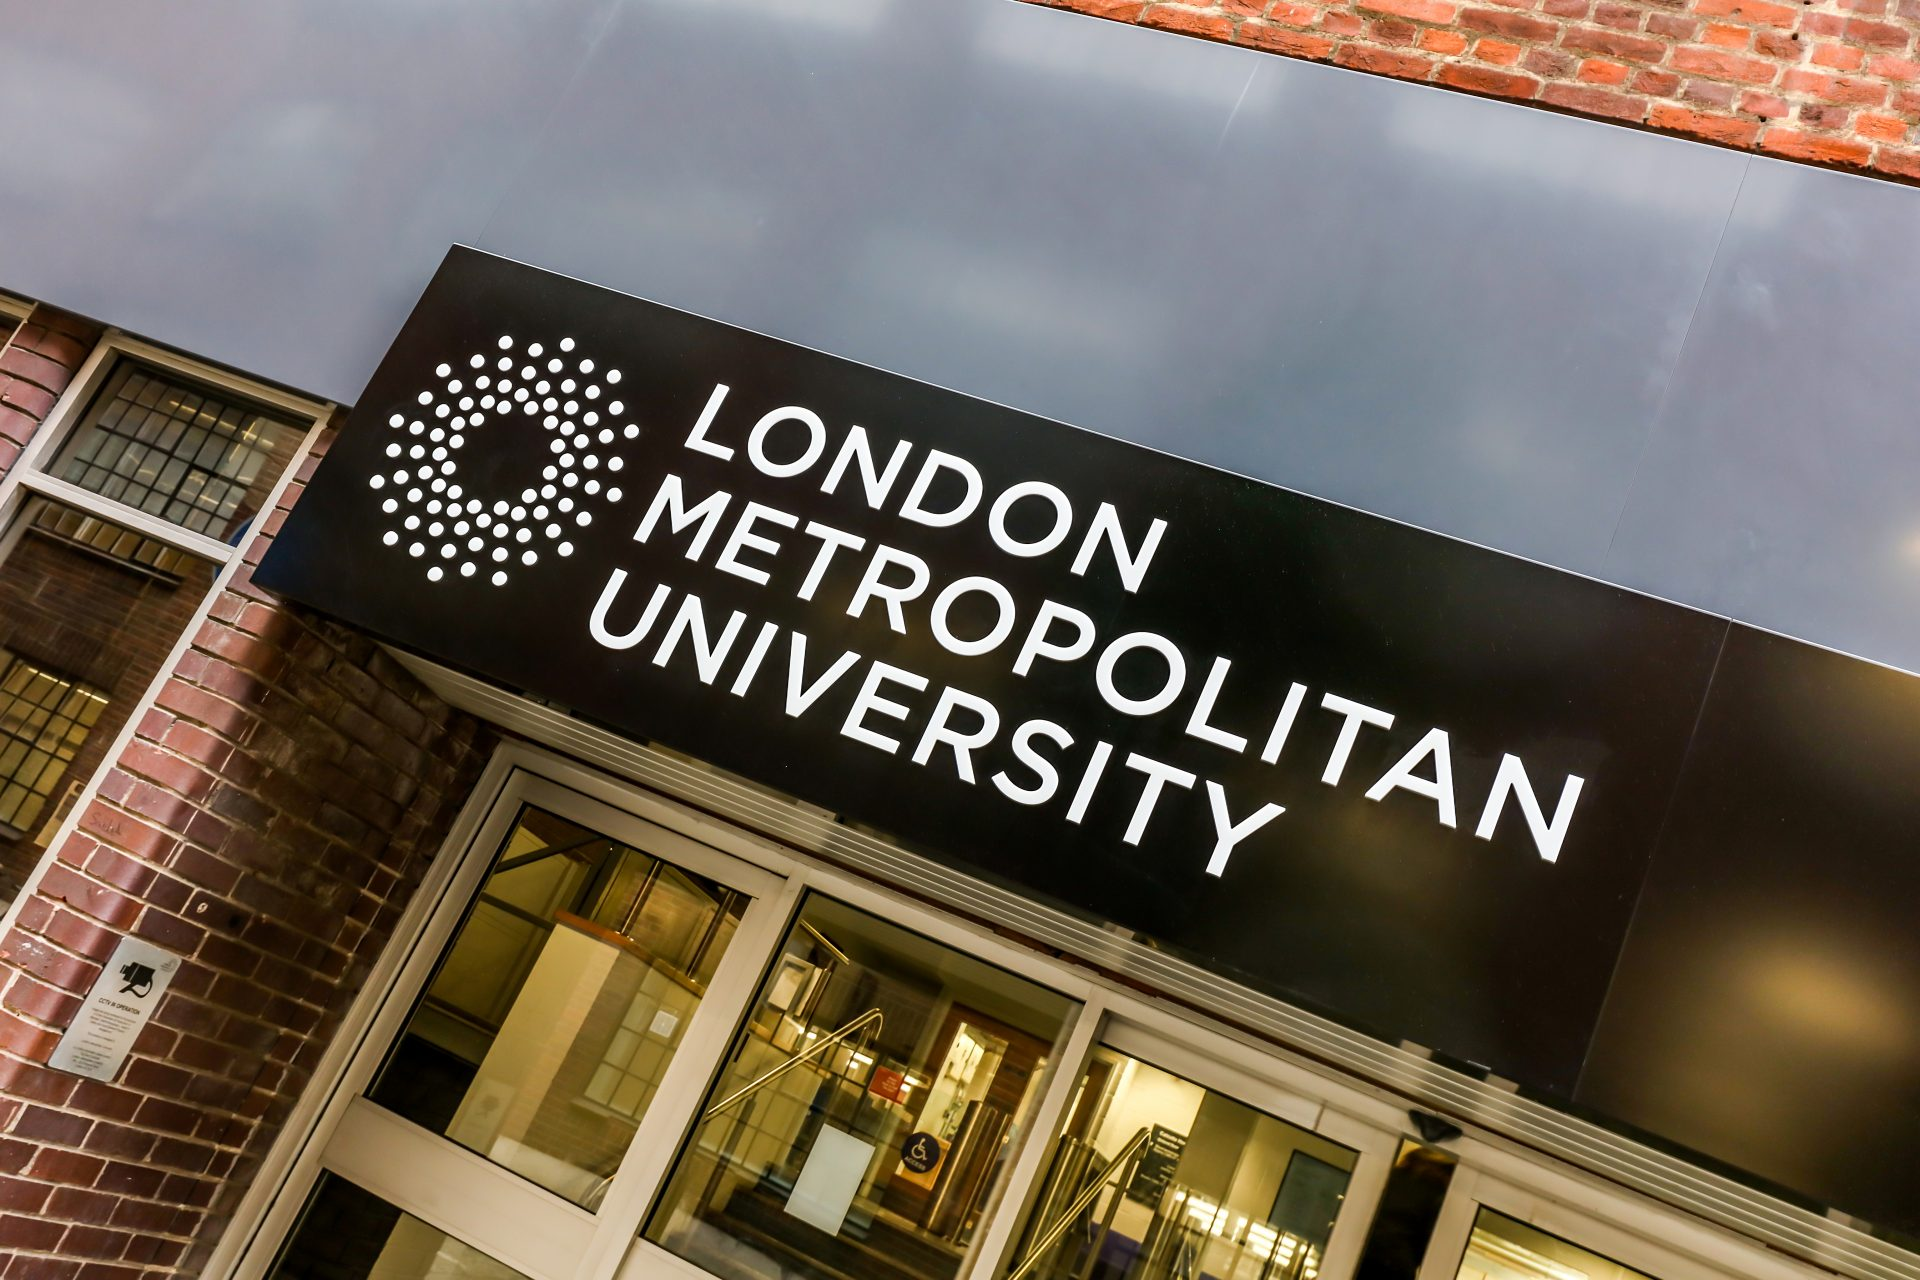 WDI appointed to improve student facilities at London